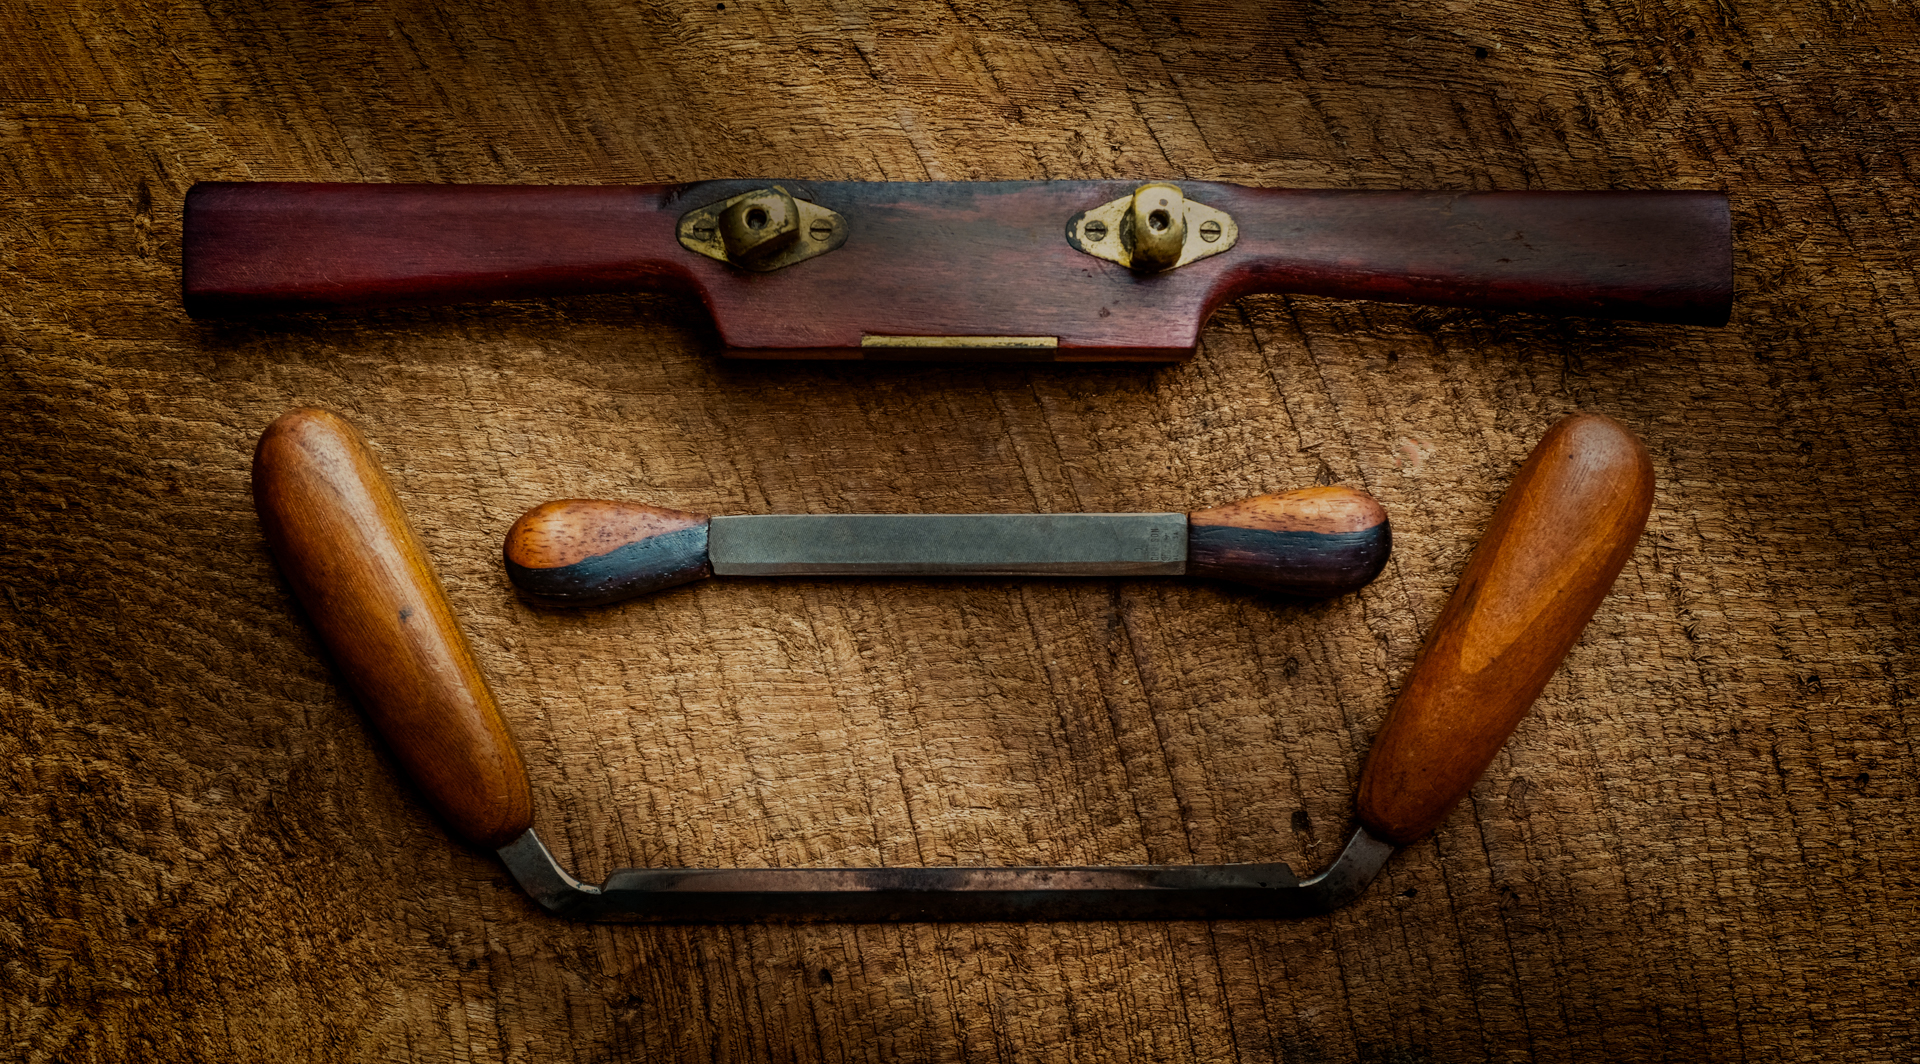 Old Woodworking Tools. Two Draw Knives and a Spoke Shave